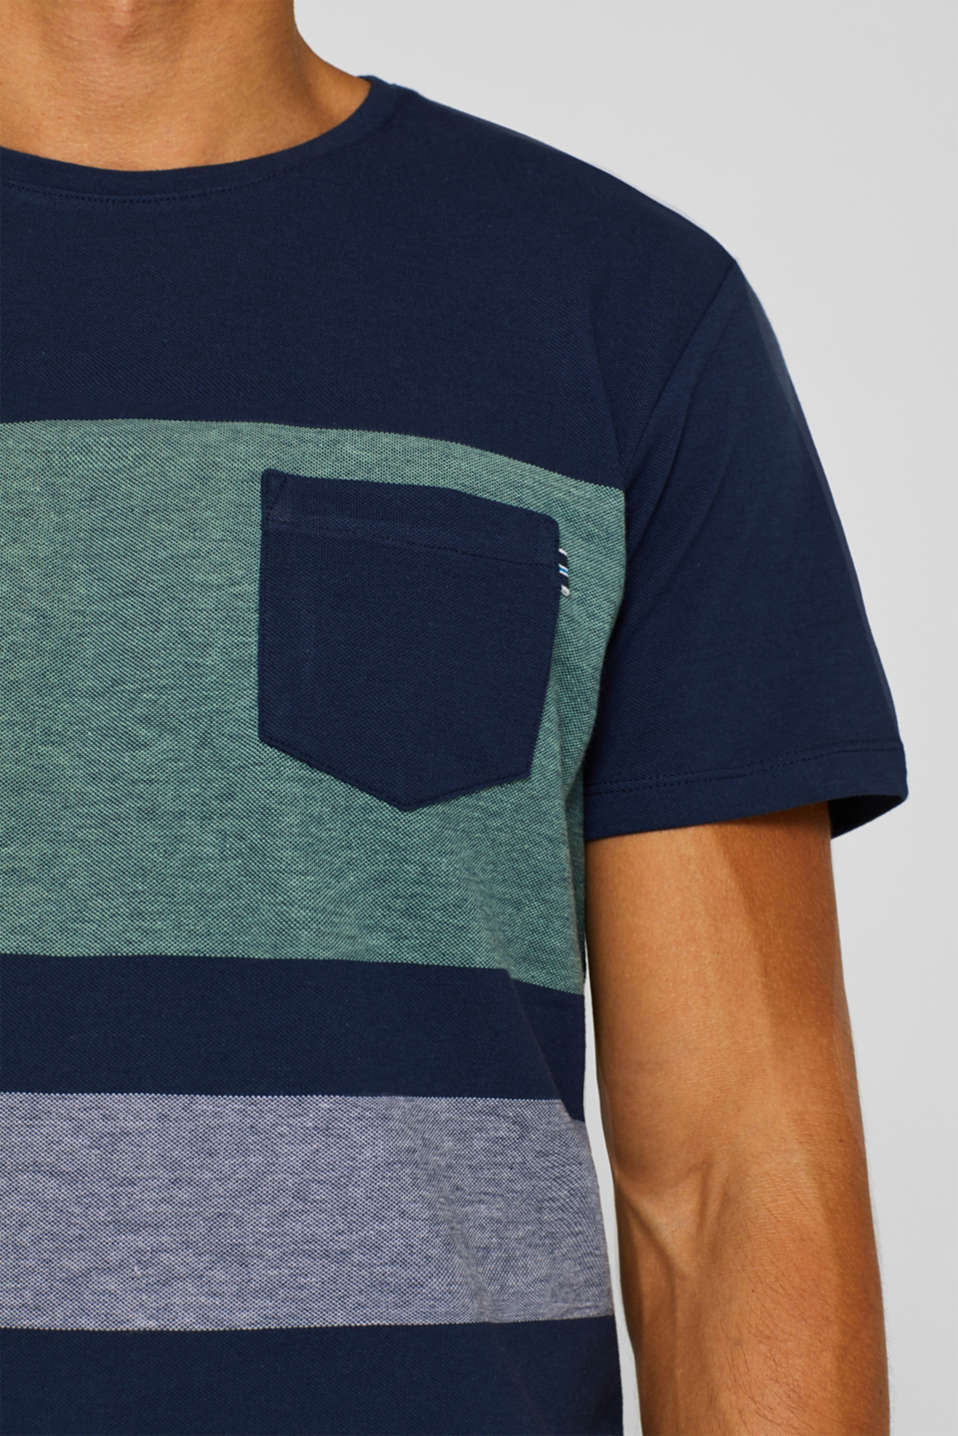 Piqué T-shirt in 100% cotton, NAVY, detail image number 1